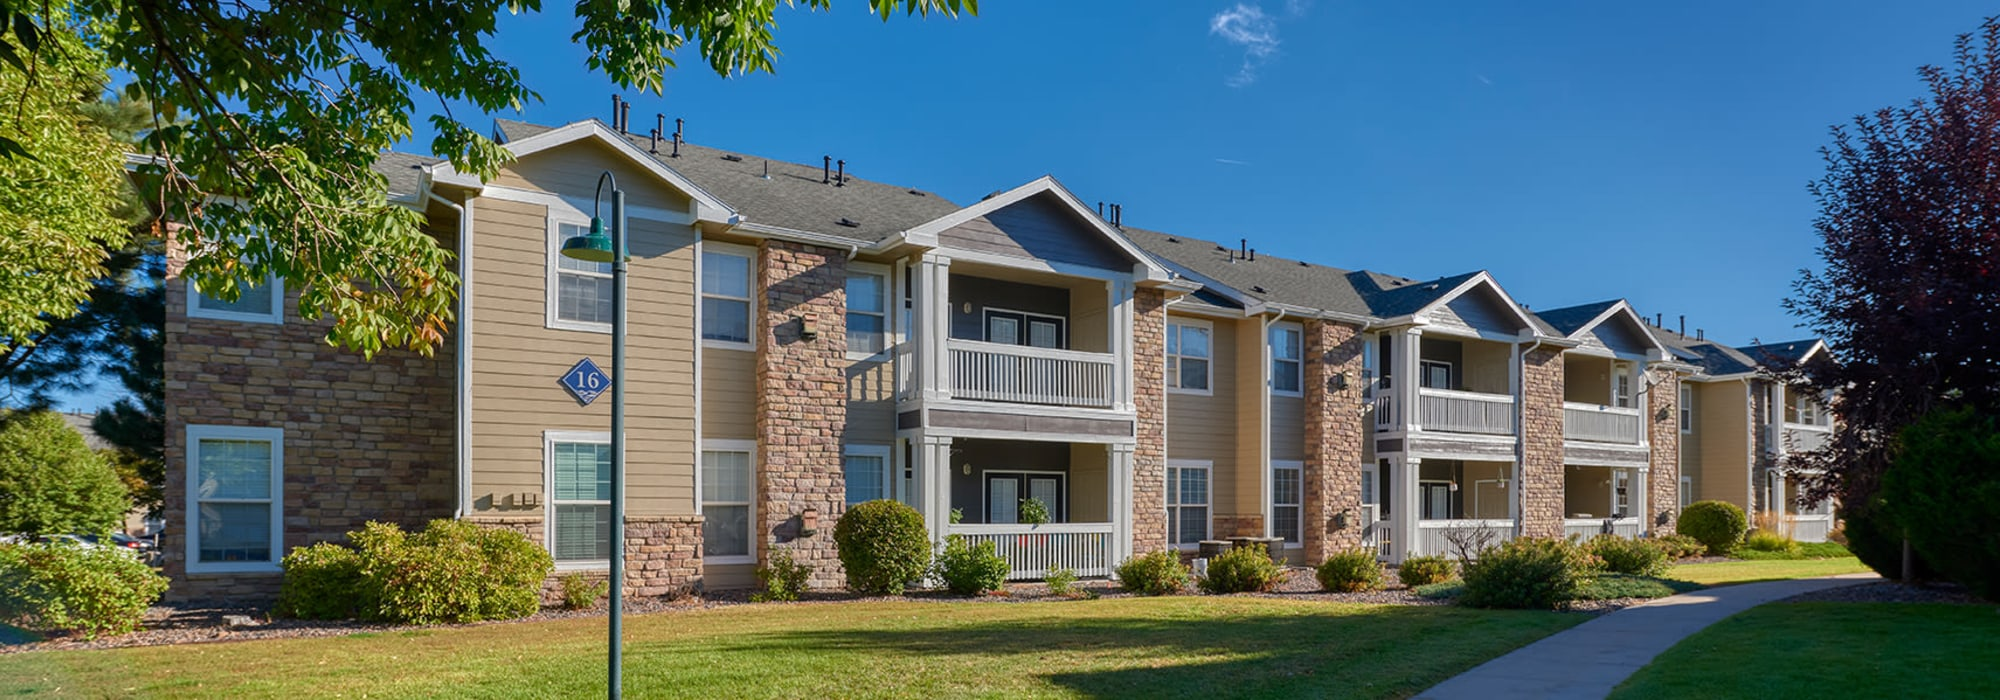 Map and directions to Gateway Park Apartments in Denver, Colorado